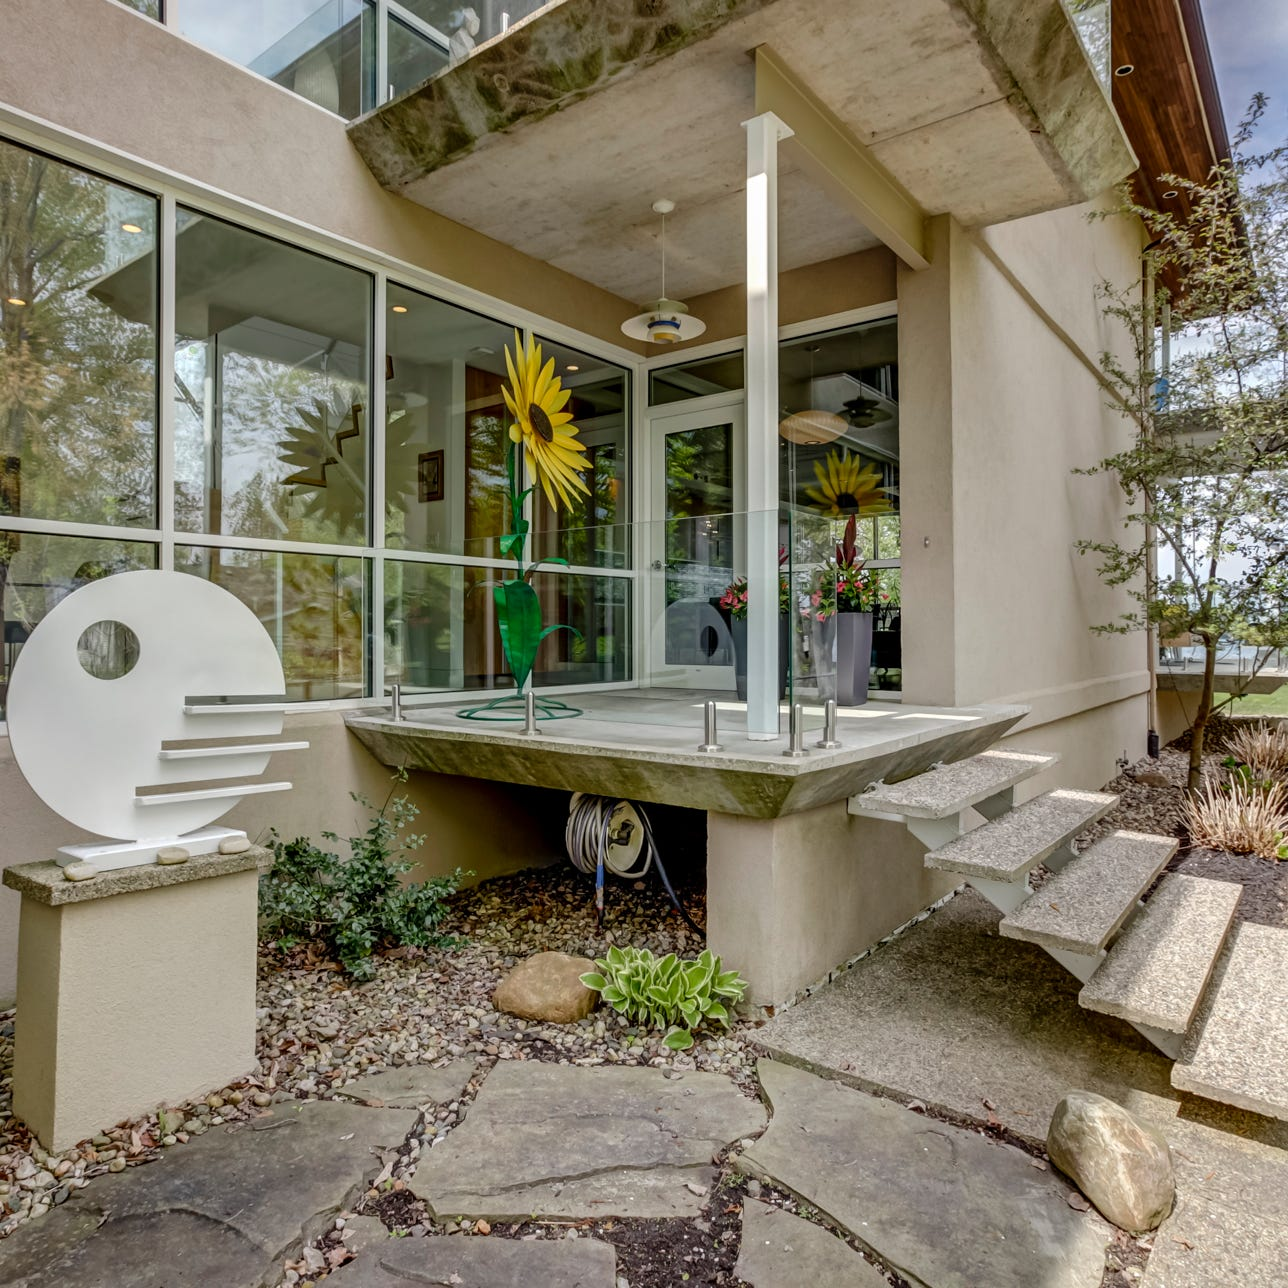 Cool Spaces: Strawberry Lake home an experiment in concrete, glass and steel